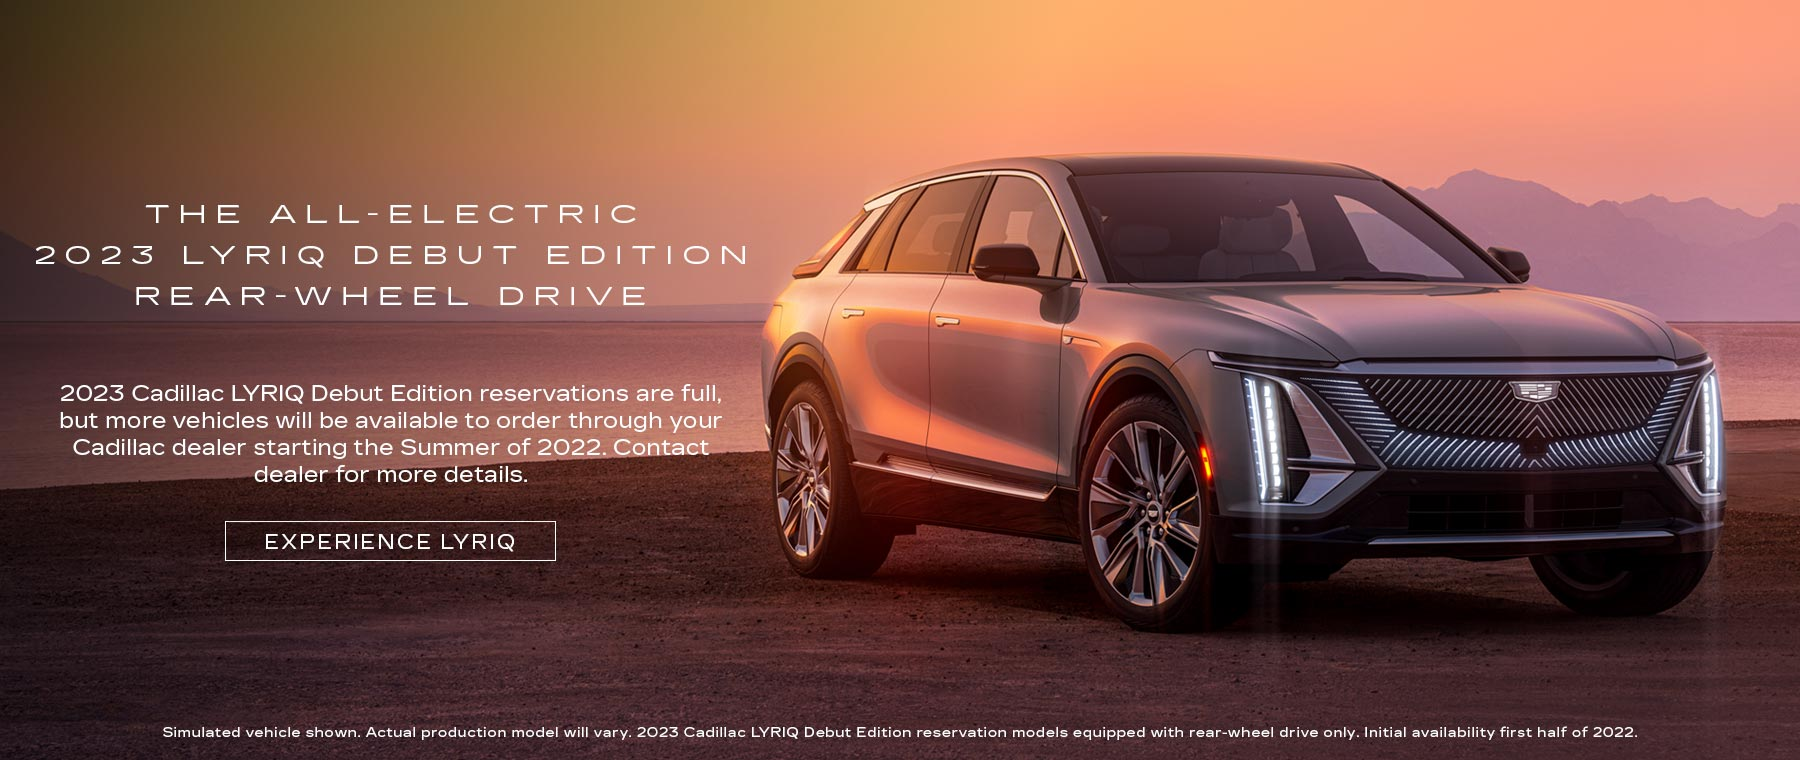 Reserve your 2023 Cadillac Lyriq Debut Edition now!